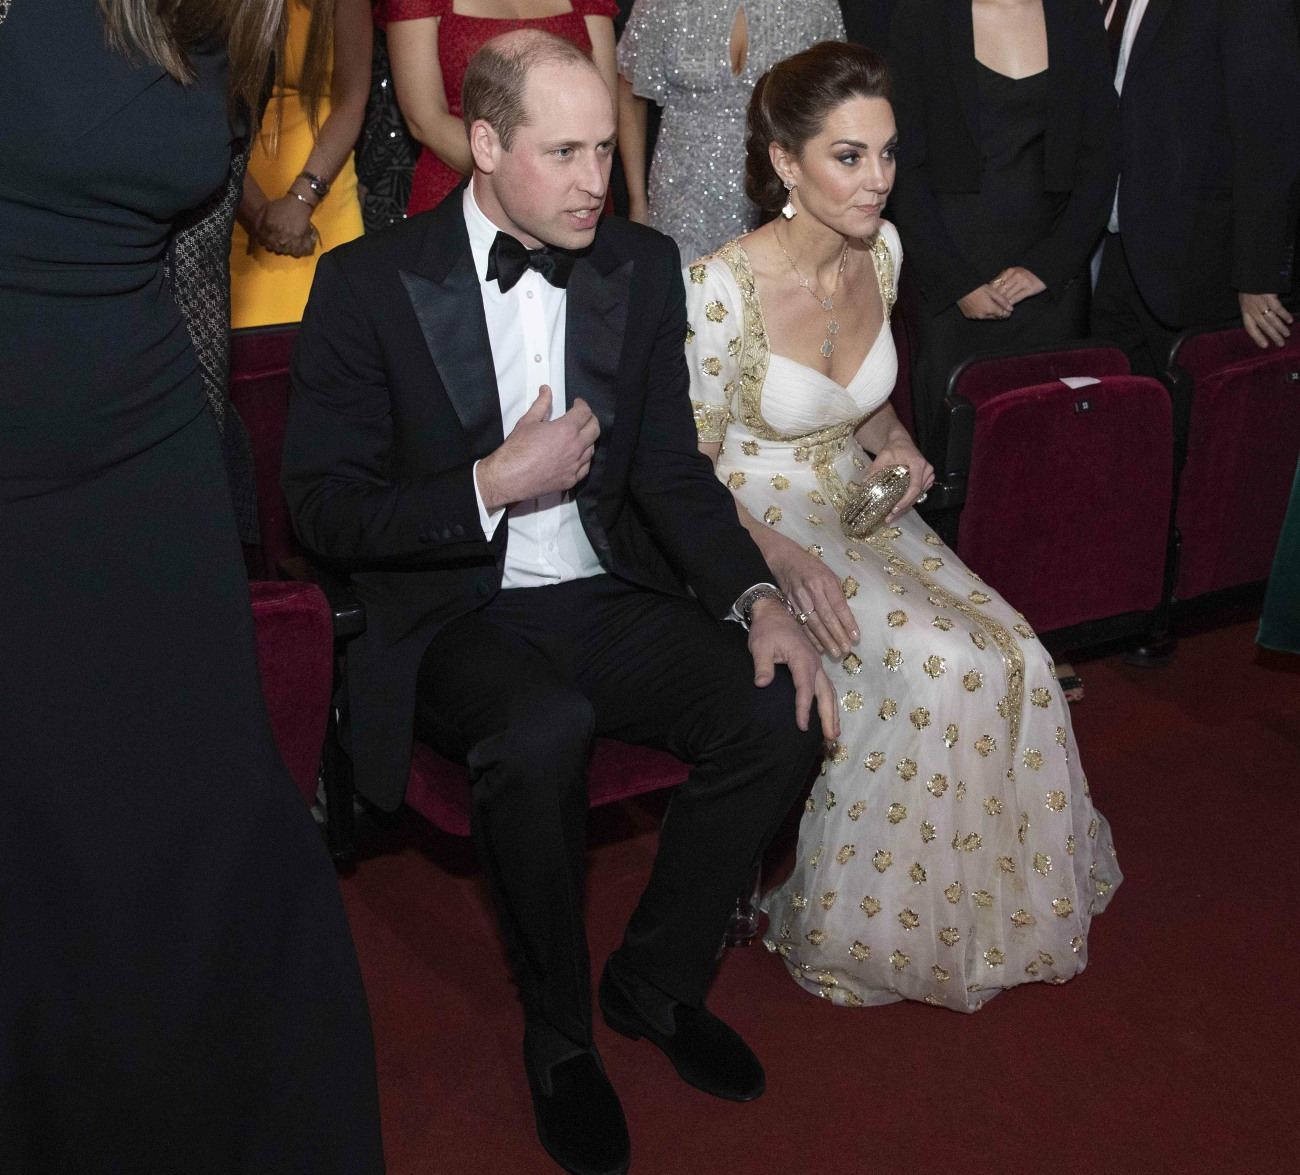 Il duca e la duchessa di Cambridge partecipano alla cerimonia dell'EE British Academy Film Awards presso la Royal Albert Hall.